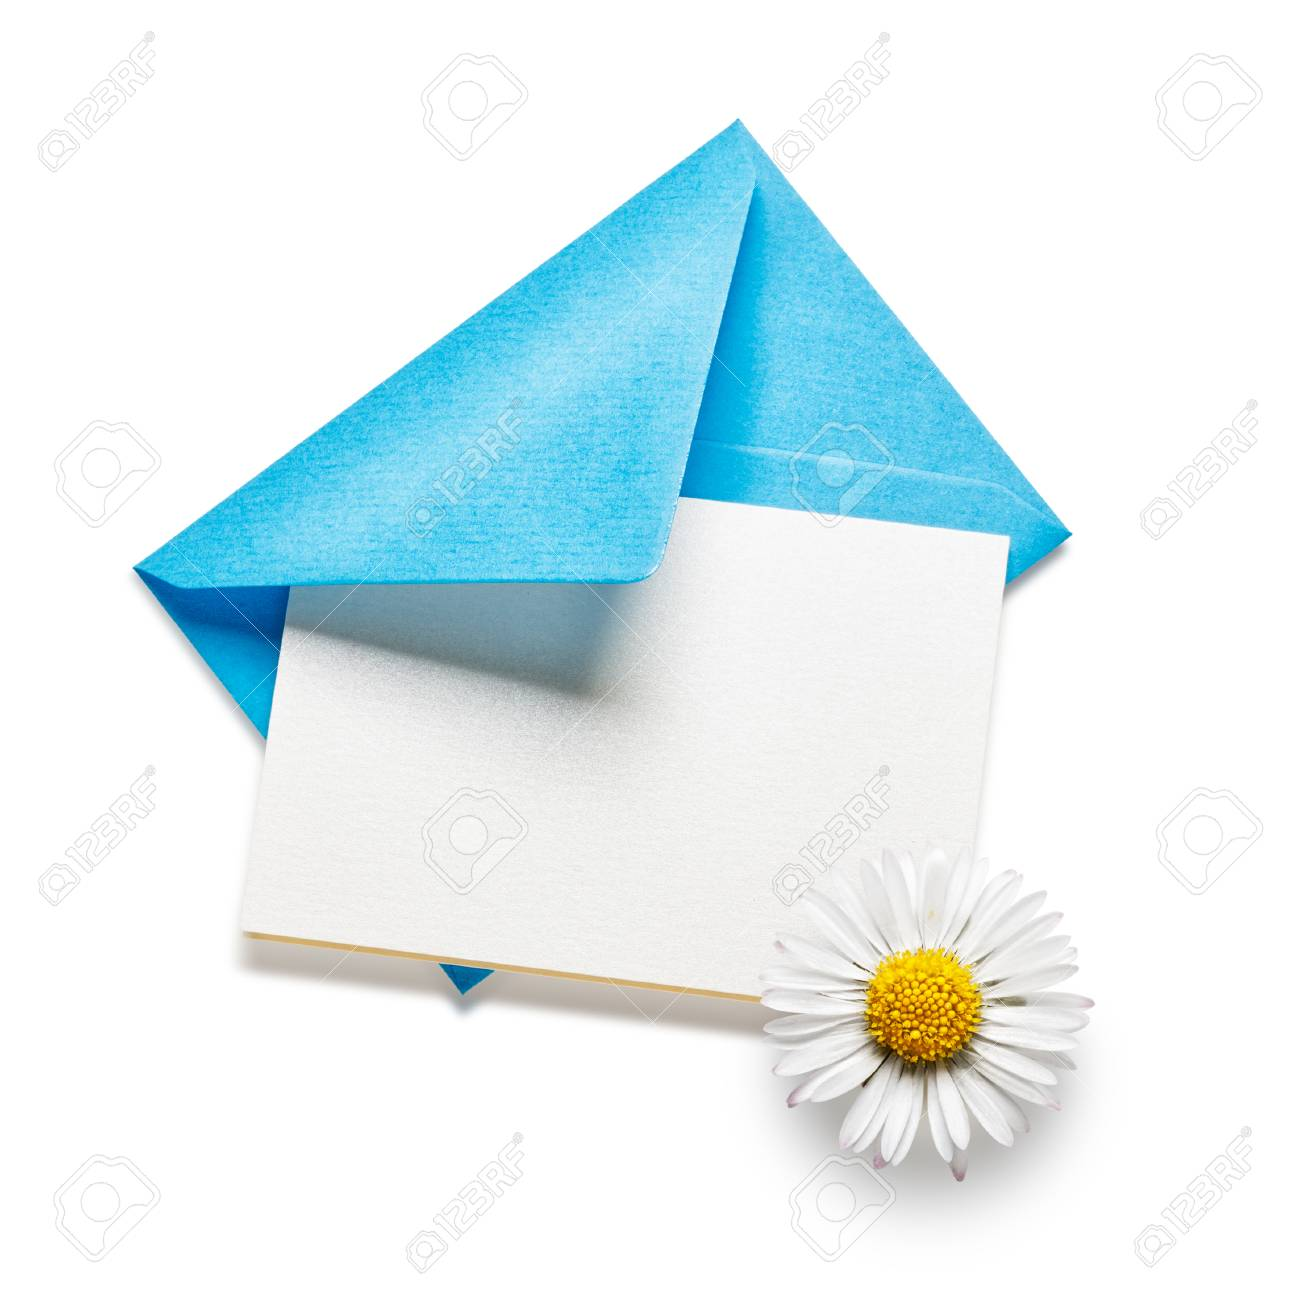 Blue envelope with card and daisy flower isolated on white blue envelope with card and daisy flower isolated on white background stock photo 28219966 mightylinksfo